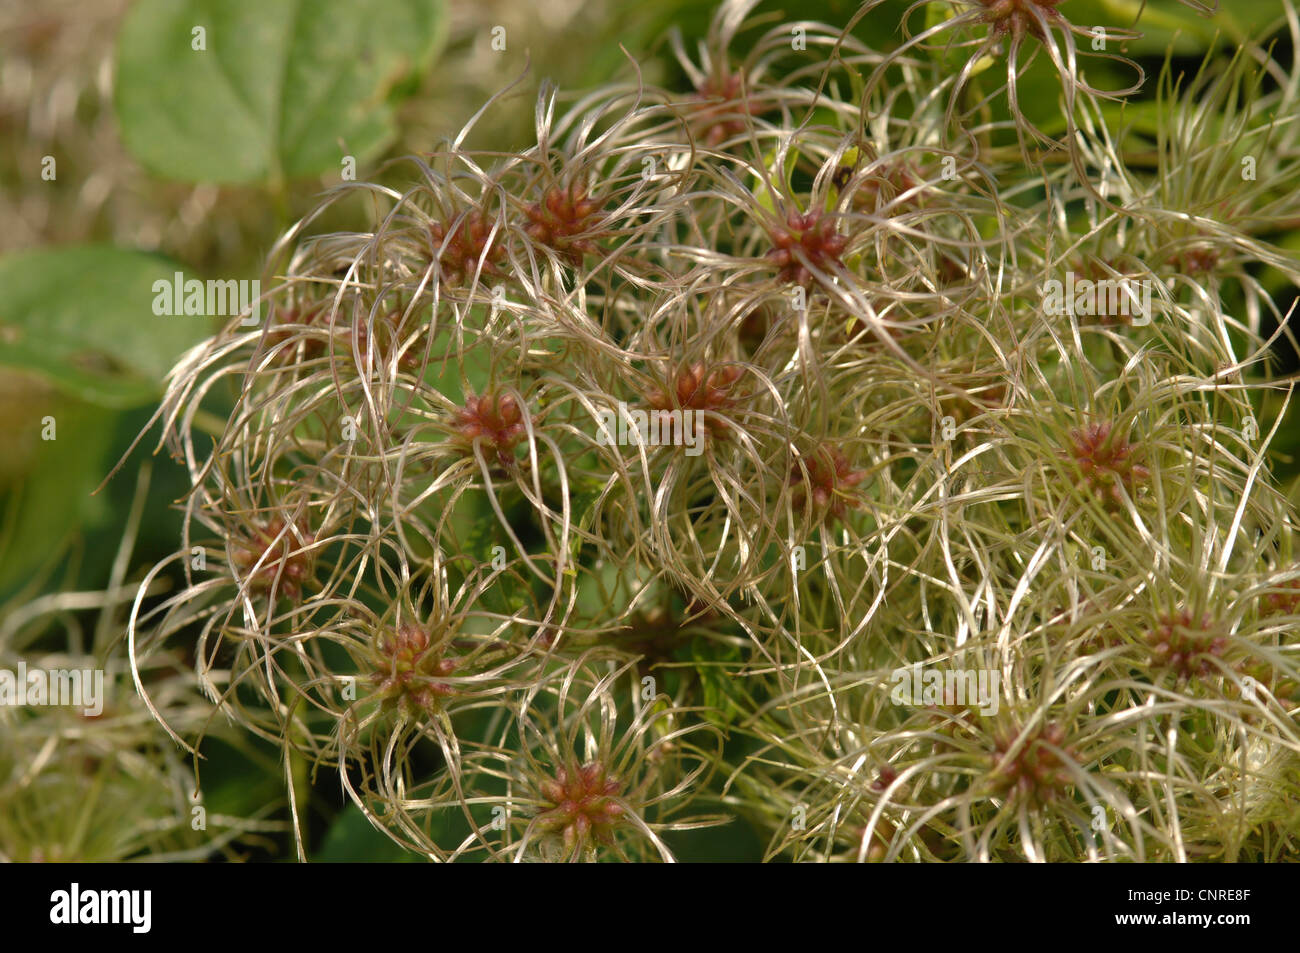 Travelers Joy, Old Man's Beard (Clematis vitalba), wind-dispersal fruits - Stock Image